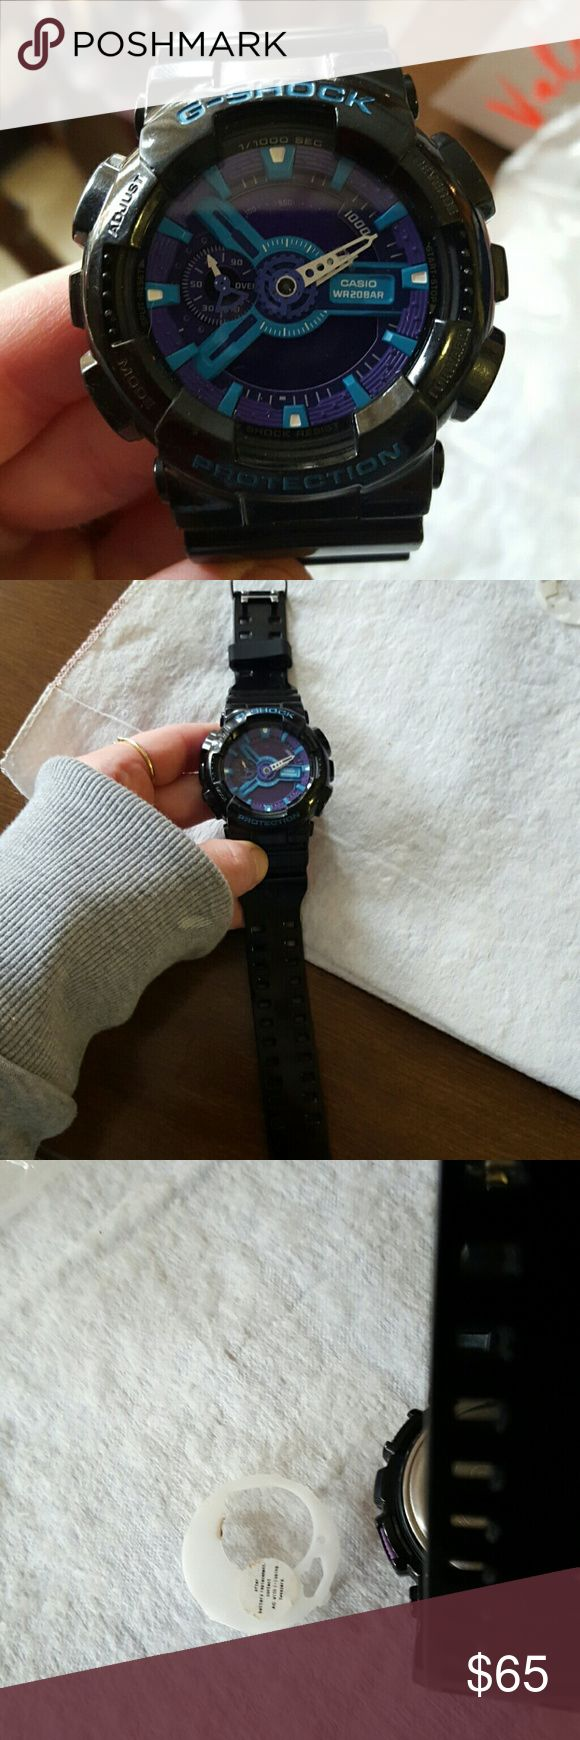 G-SHOCK WATCH FOR SALE OR TRADE ON POSH!Gorgeous black with purple and teal G-Shock watch. This is the large largest faceed watch available in the. It needed a new battery and I tried taking the back off to put the battery in myself to surprise my Husband when he came home& and then didn't remember to put it back together. Picture 3 and 4 shows that. Any watch dealer, Jeweler or jewelry store can do it for you, I just didn't want to mess around with it. A battery costs $3.Sold as is.Dont…